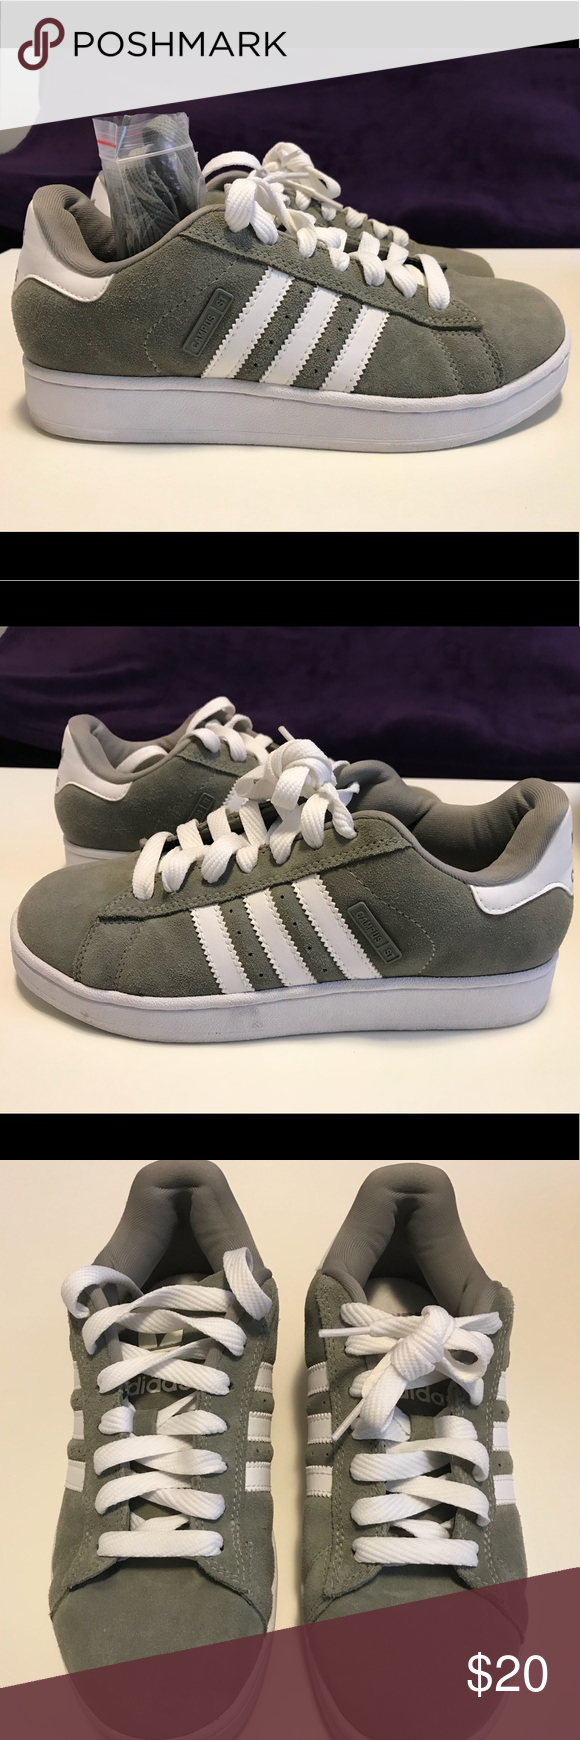 Adidas Campus Women's Sneakers - Olive